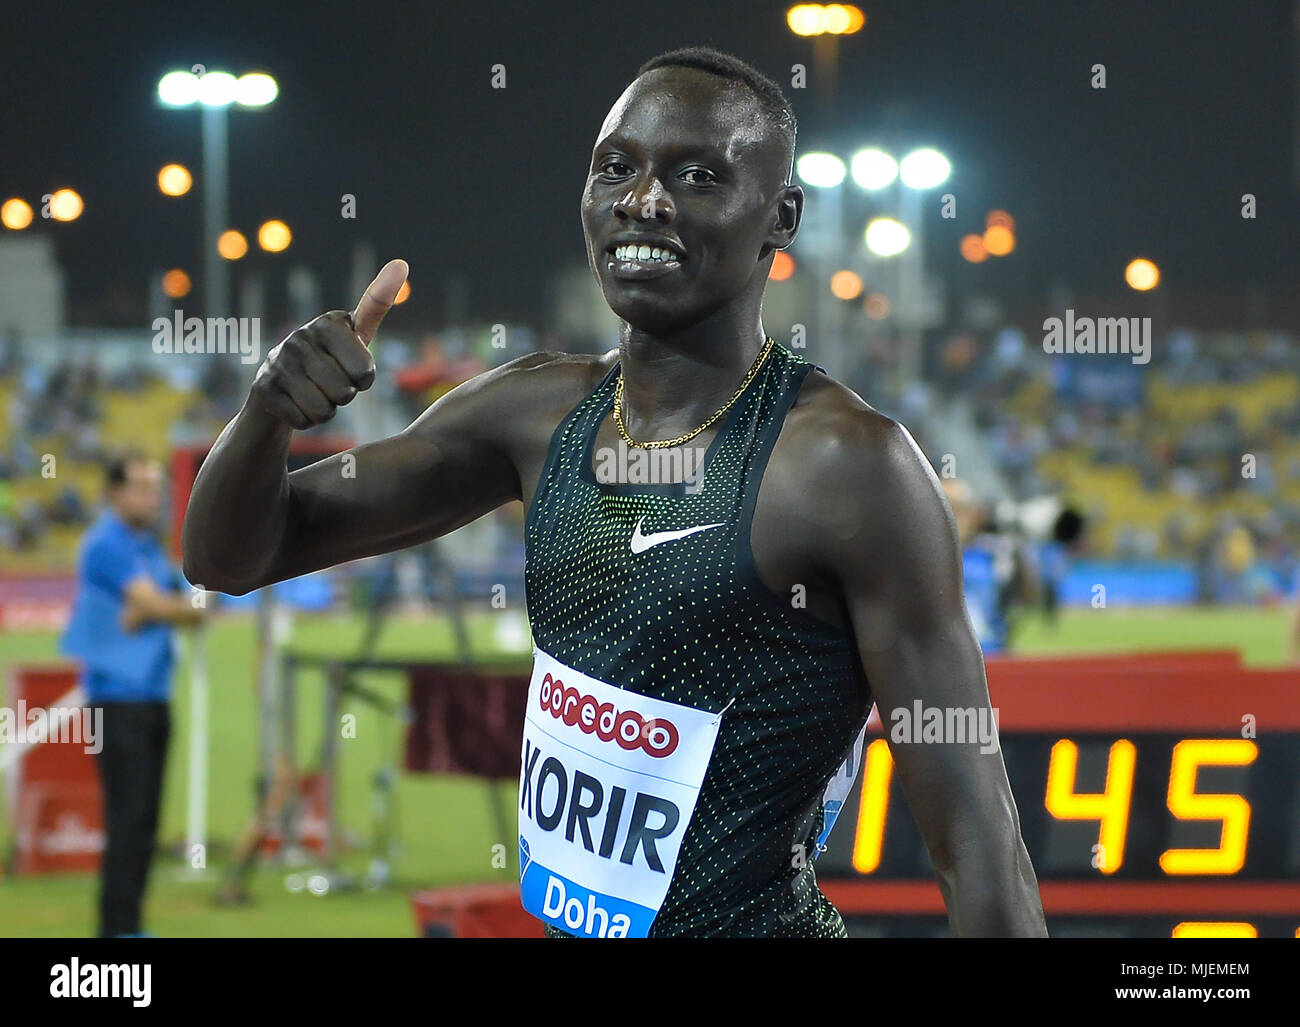 The 800m Race Stock Photos & The 800m Race Stock Images ...